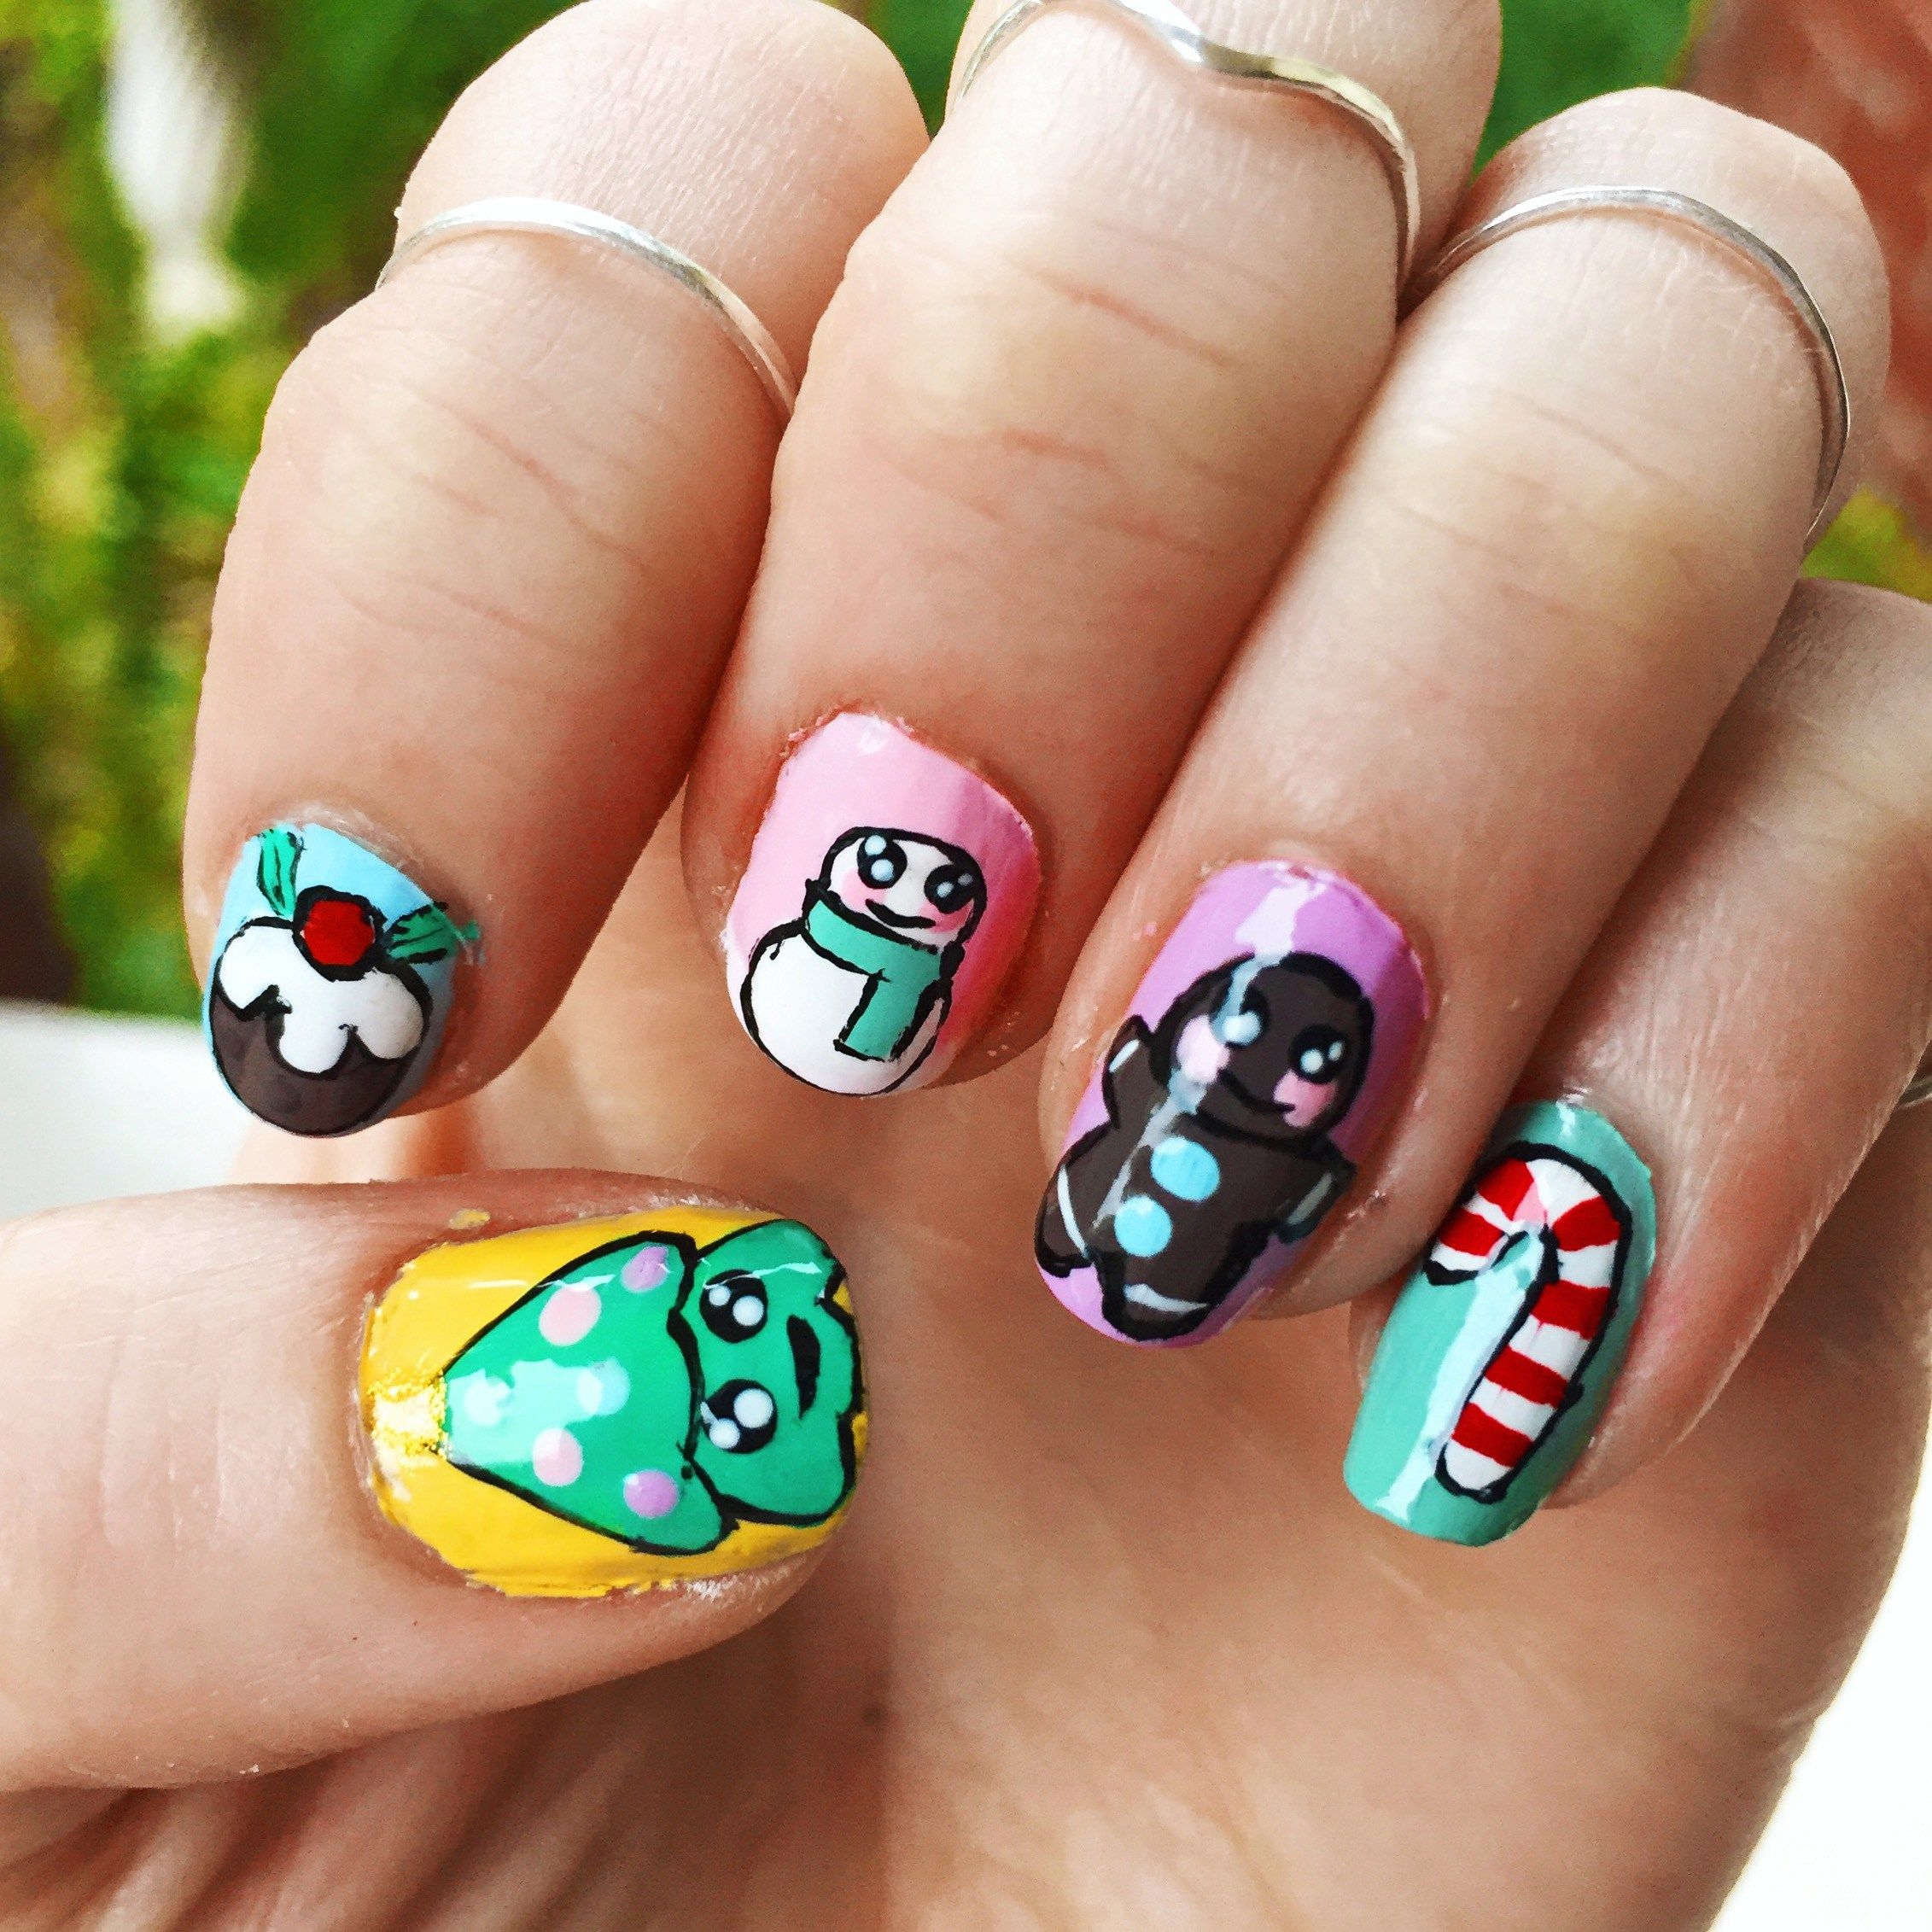 I Scream Nails Inspired Christmas Nail Art Nails Pinterest